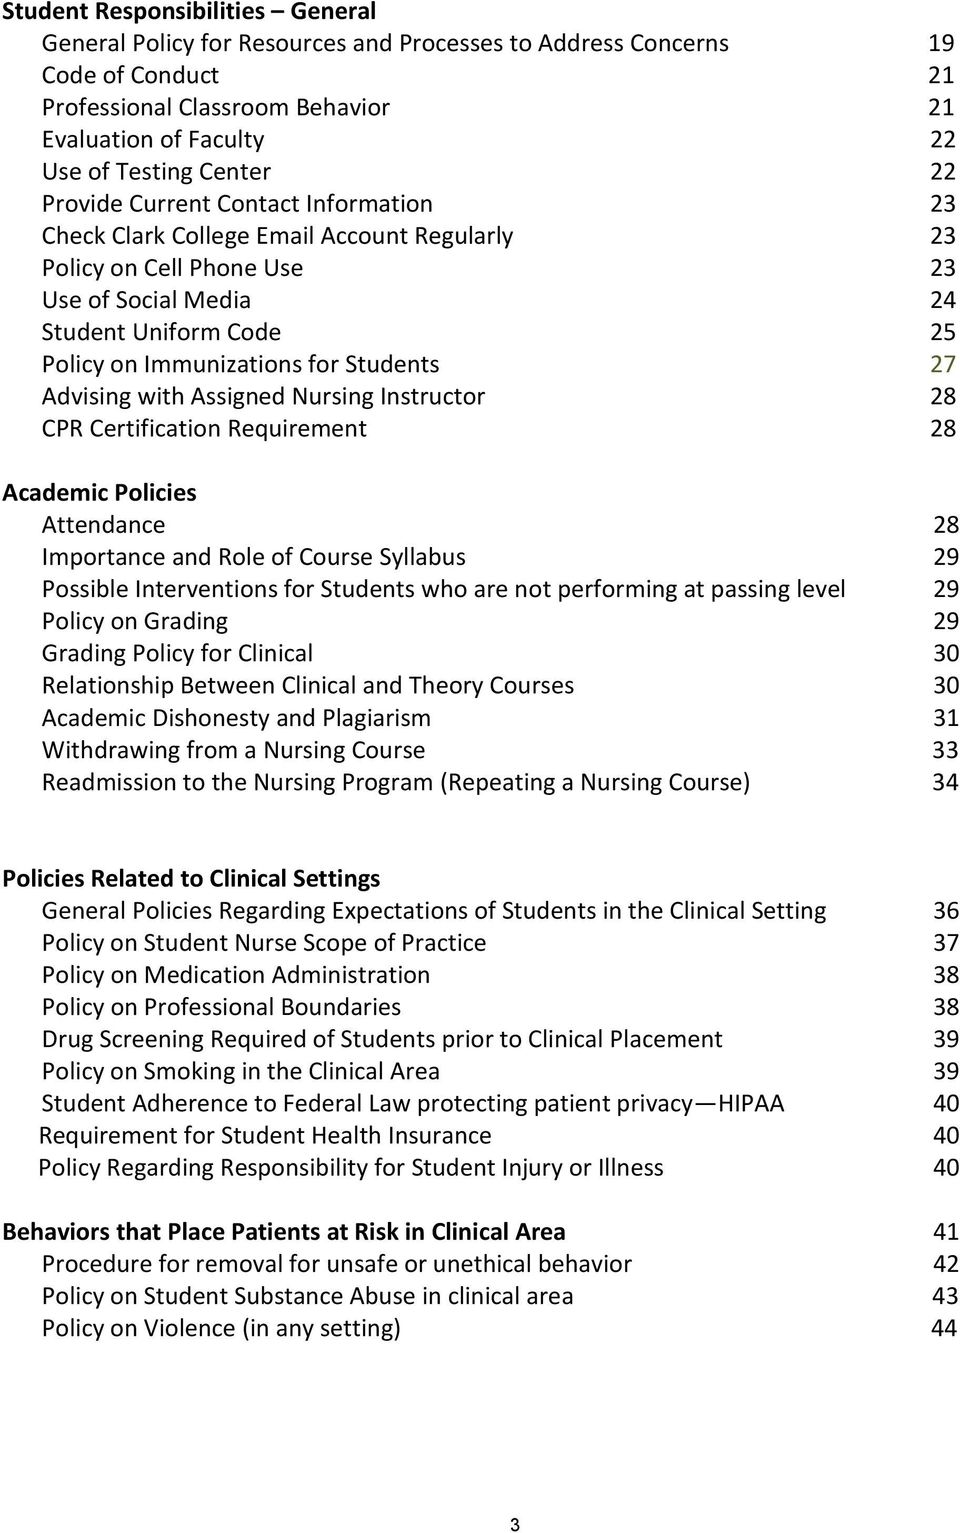 Students 27 Advising with Assigned Nursing Instructor 28 CPR Certification Requirement 28 Academic Policies Attendance 28 Importance and Role of Course Syllabus 29 Possible Interventions for Students